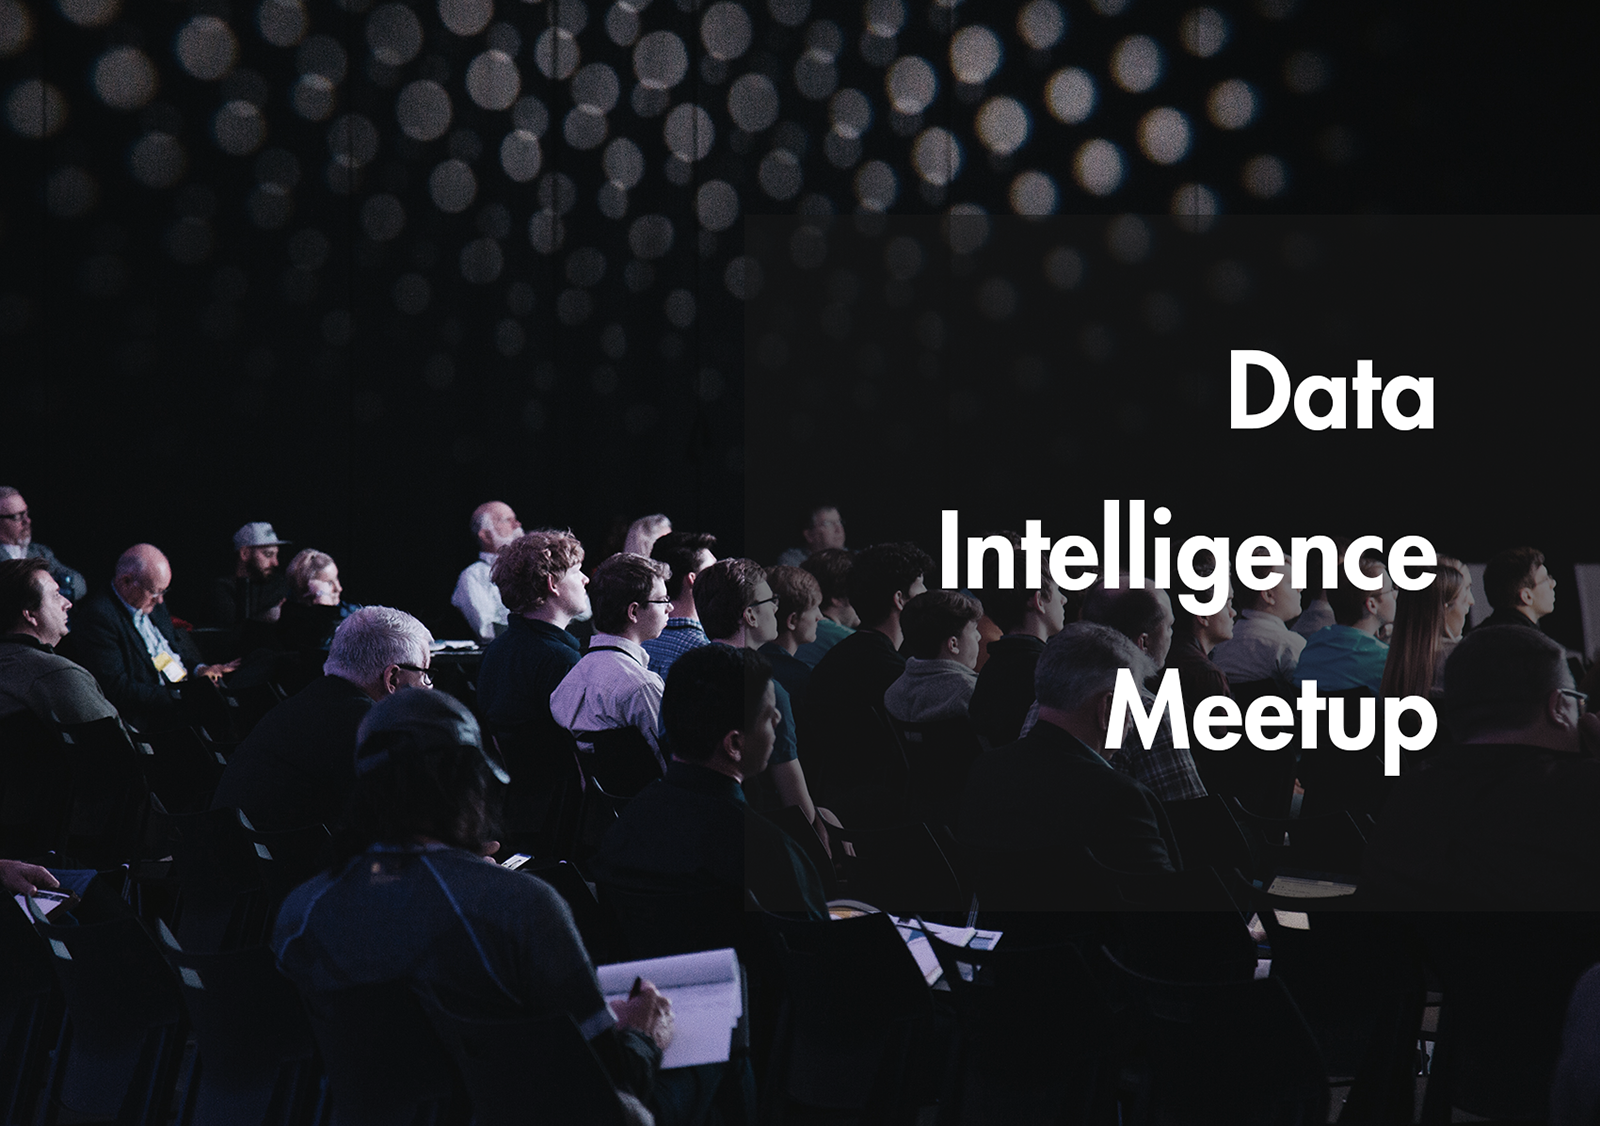 Data Intelligence Meetup: An event dedicated to strengthening the AI and data science community in Munich